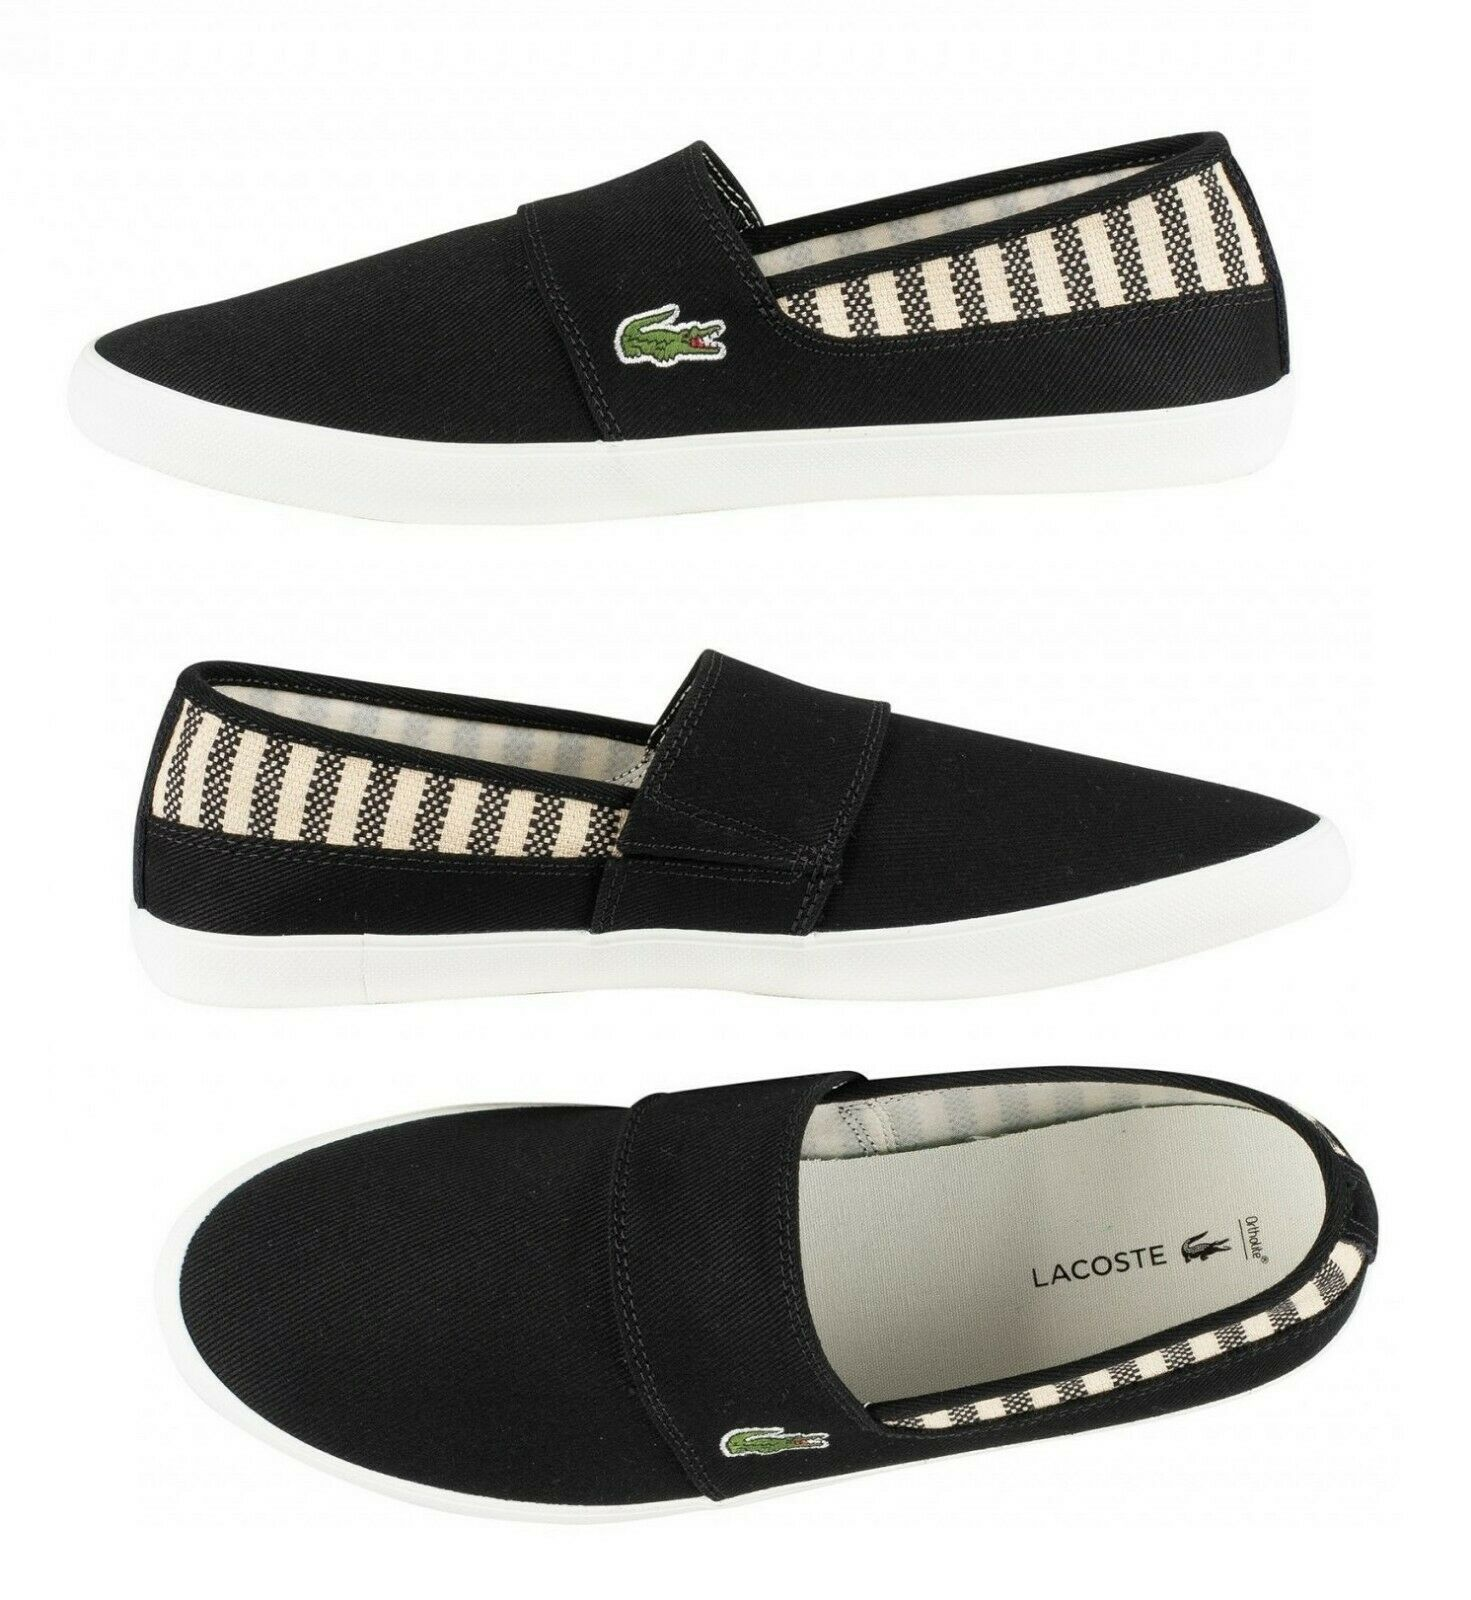 Lacoste Marice 219  Men's Croc Logo Casual Slip On Loafer shoes Sneakers Black